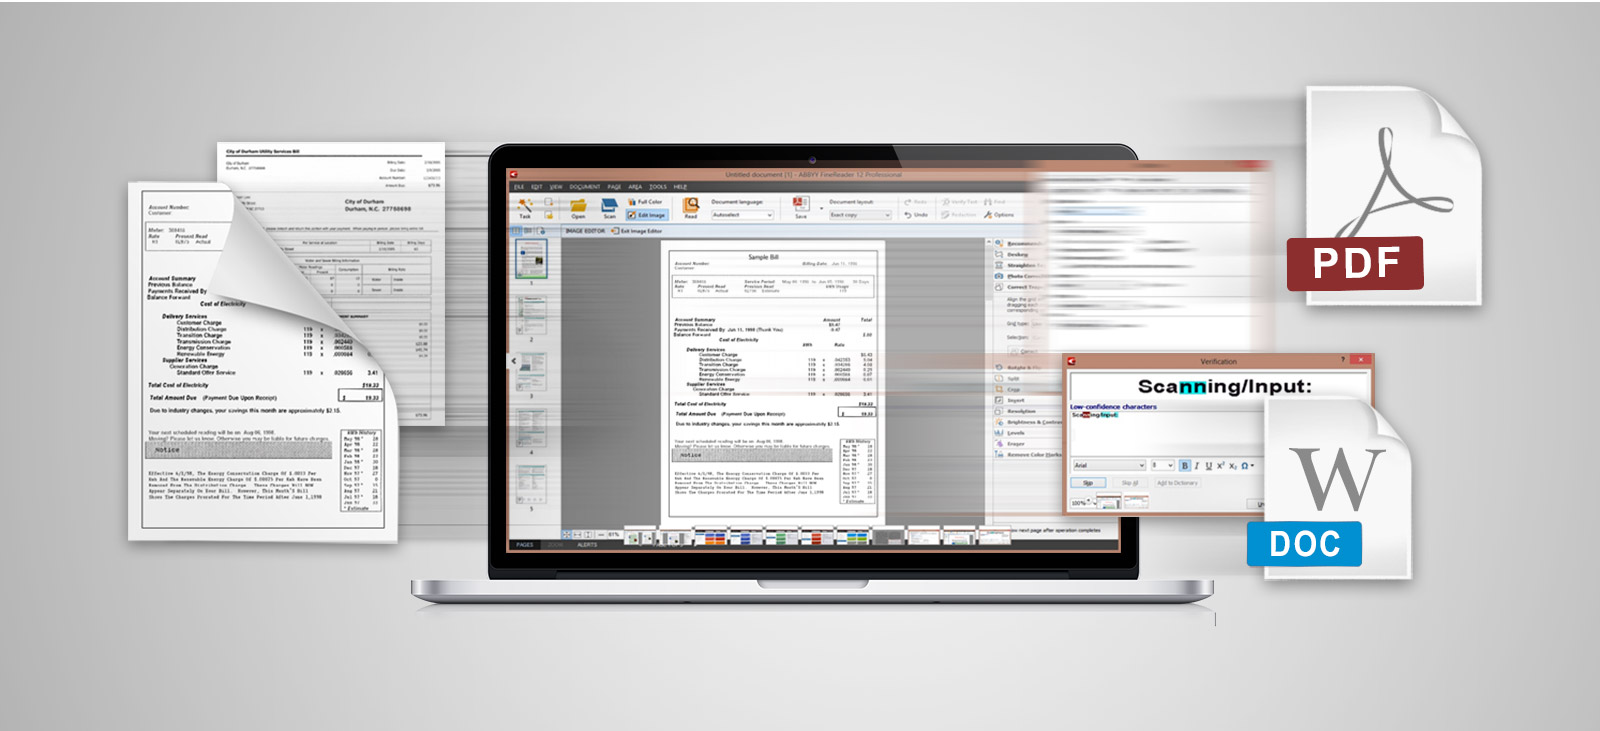 optical character recognition technology integrated ABBYY FineReader Sprint